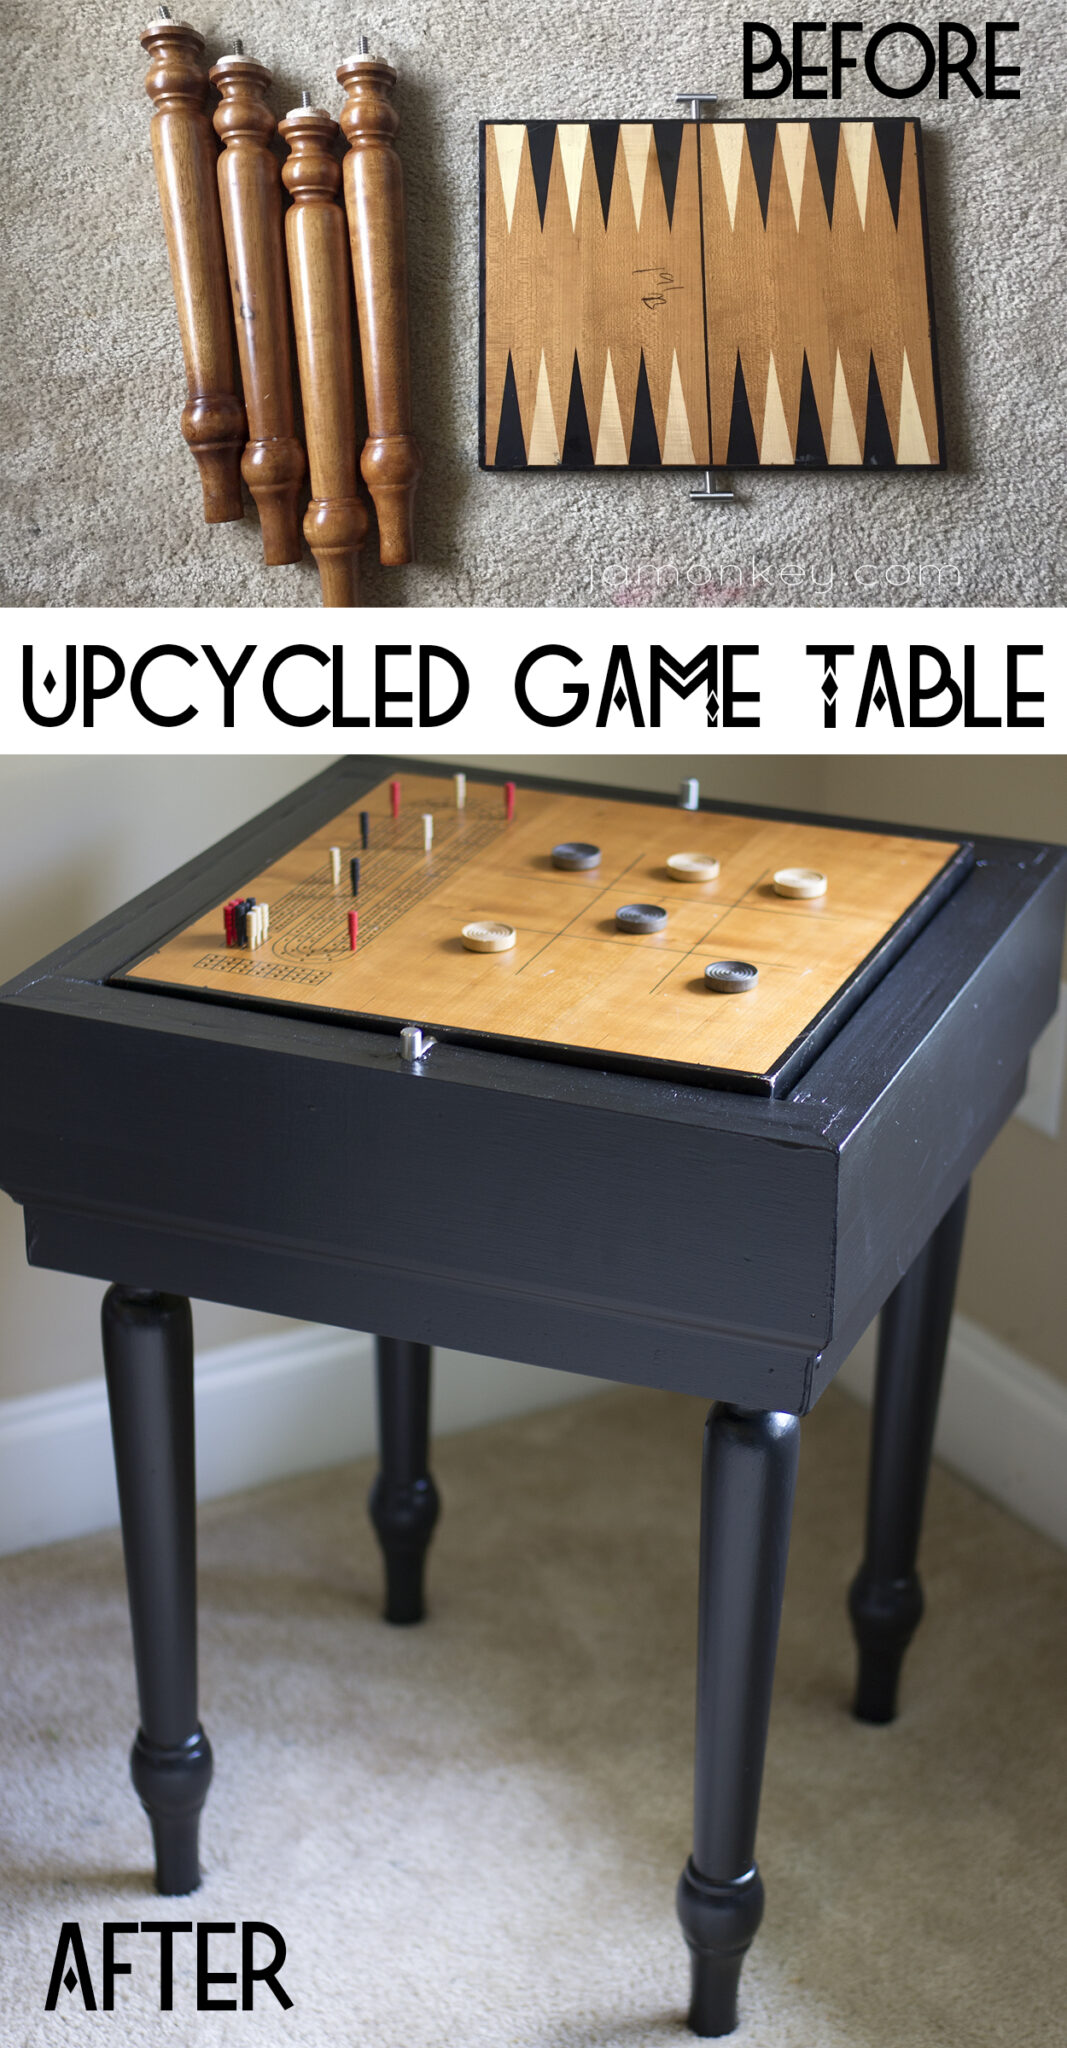 Upcycled Game Table